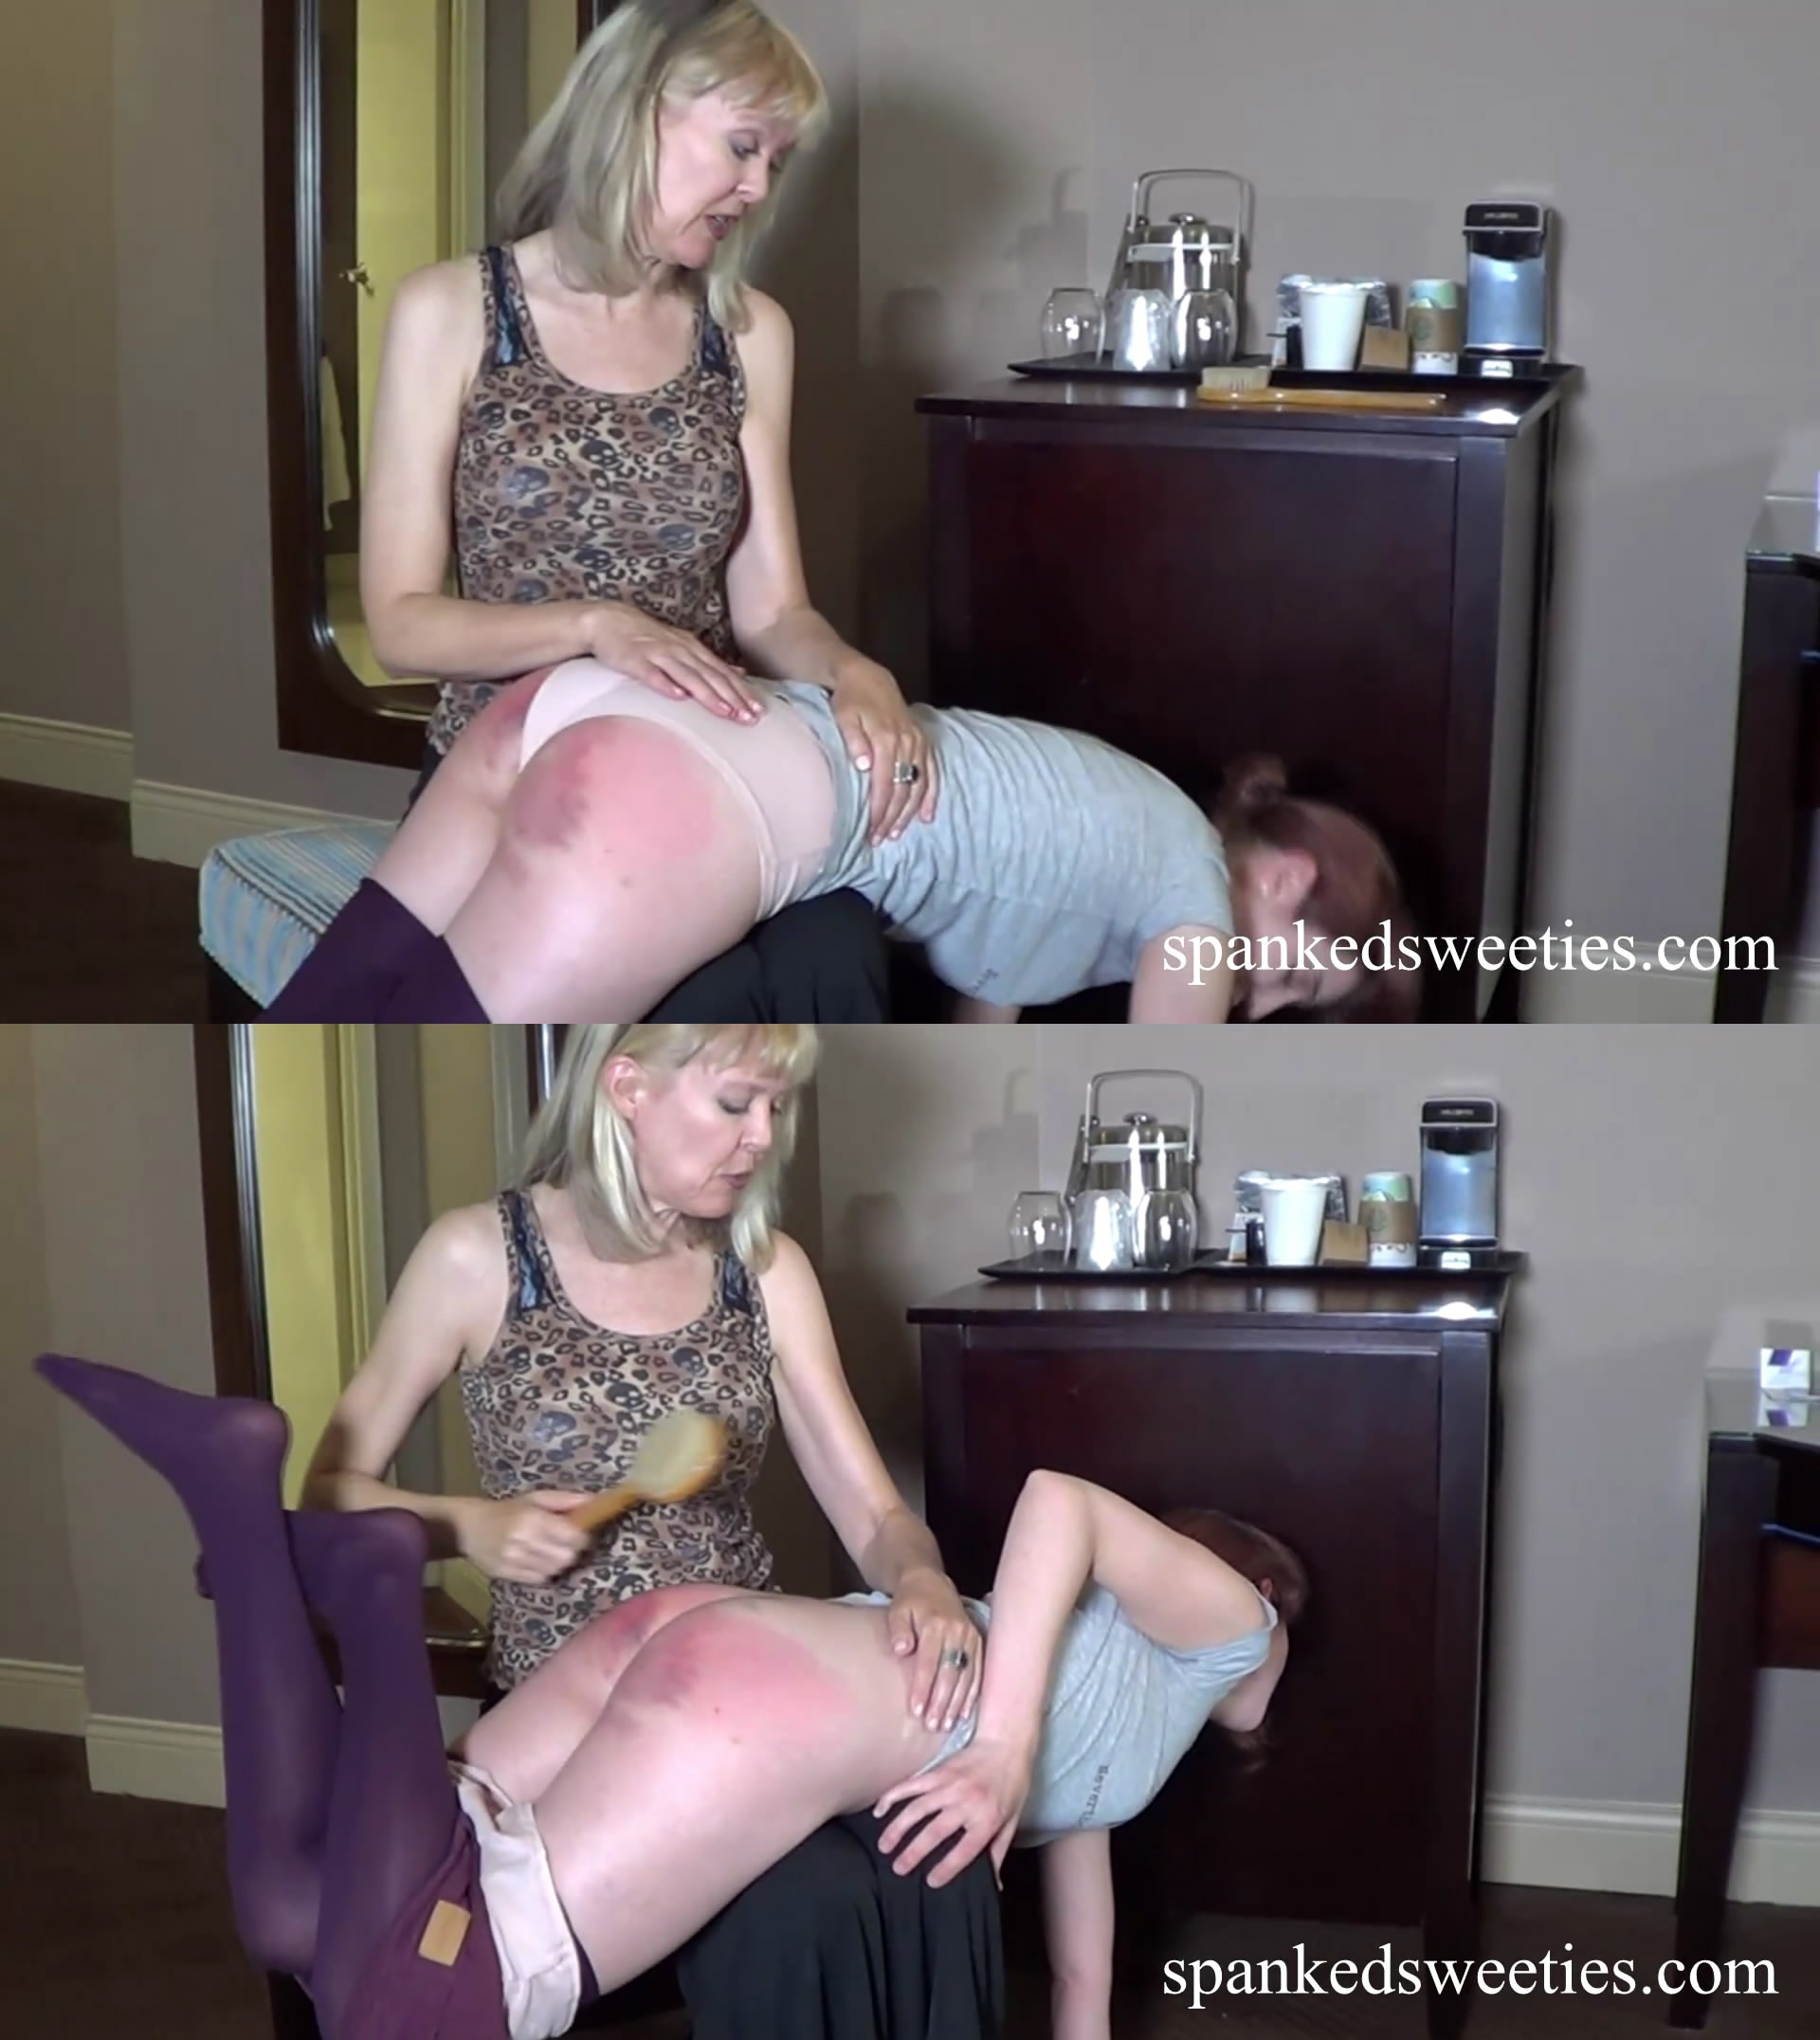 Spanked Sweeties – MP4/Full HD – Ava Nyx, Clare Fonda – Ava Nyx